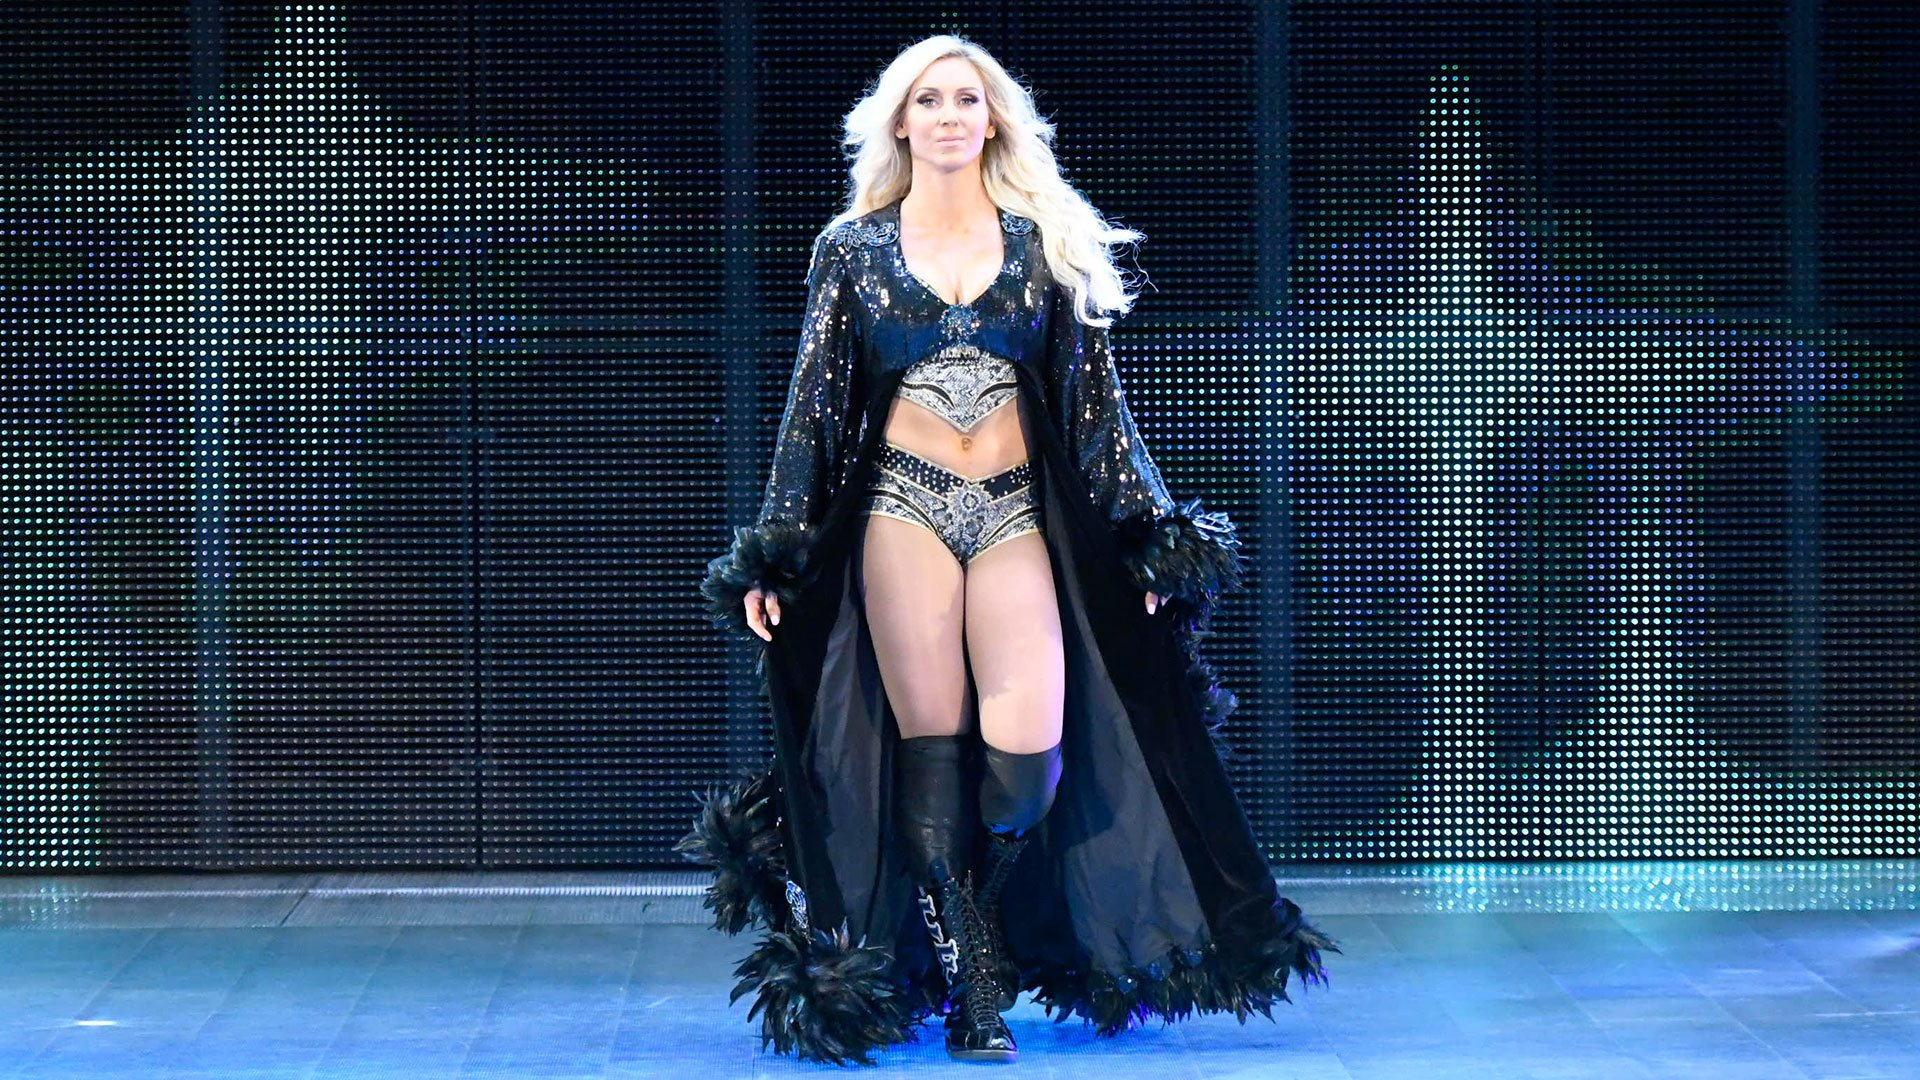 Charlotte hits the ring to kick off SmackDown LIVE.